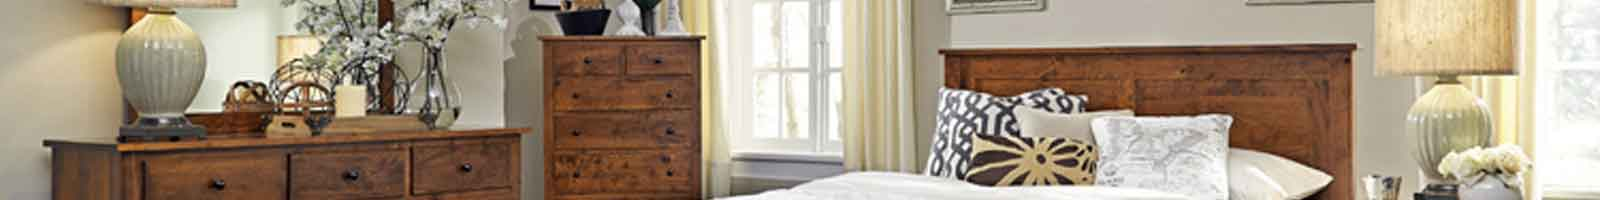 Bedroom Image Banner